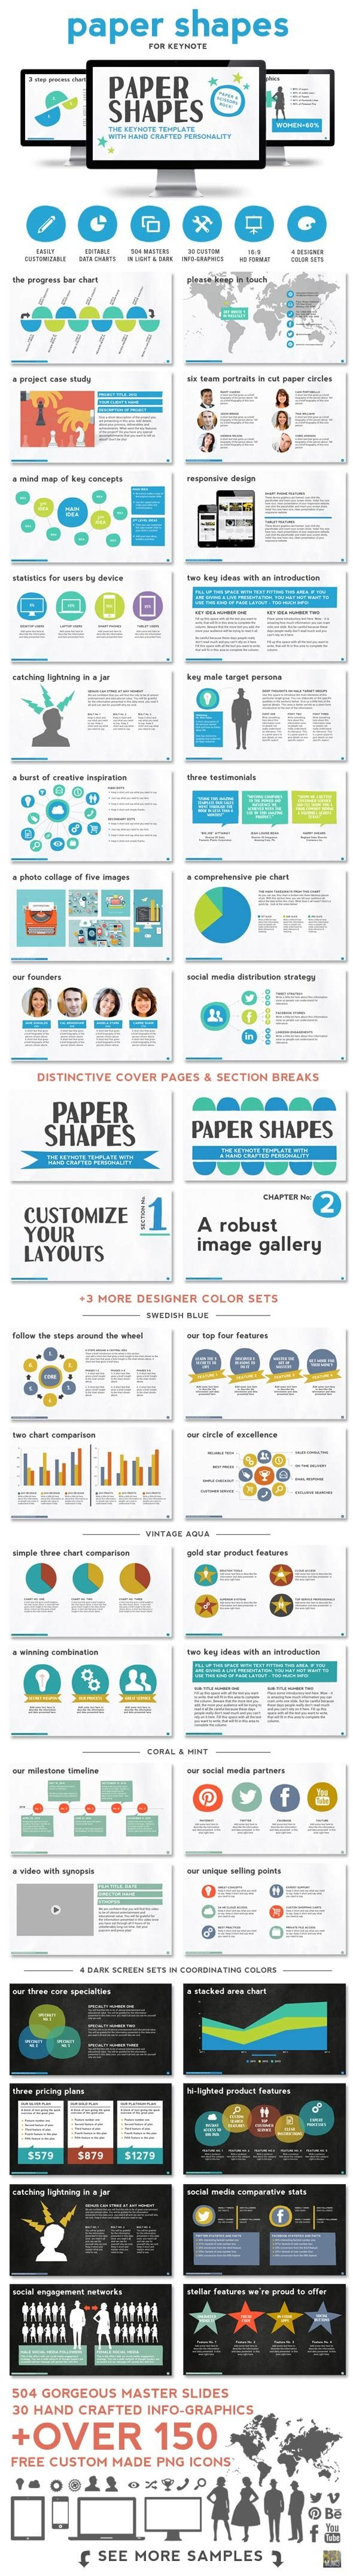 Paper Shapes Keynote Presentation Template - Creative Keynote Templates